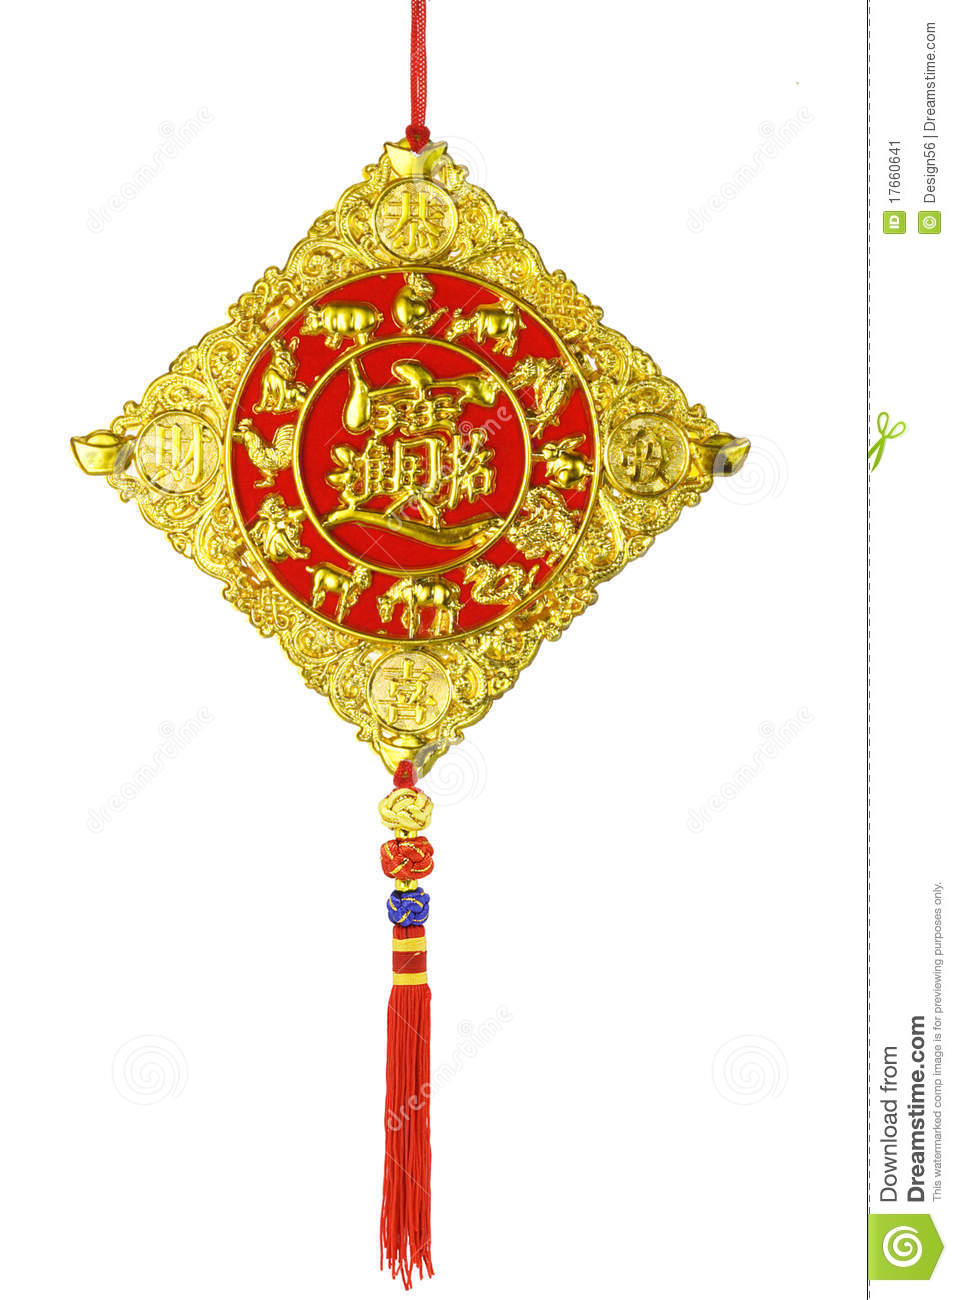 Chinese new year ornaments with zodiac animals on white background.